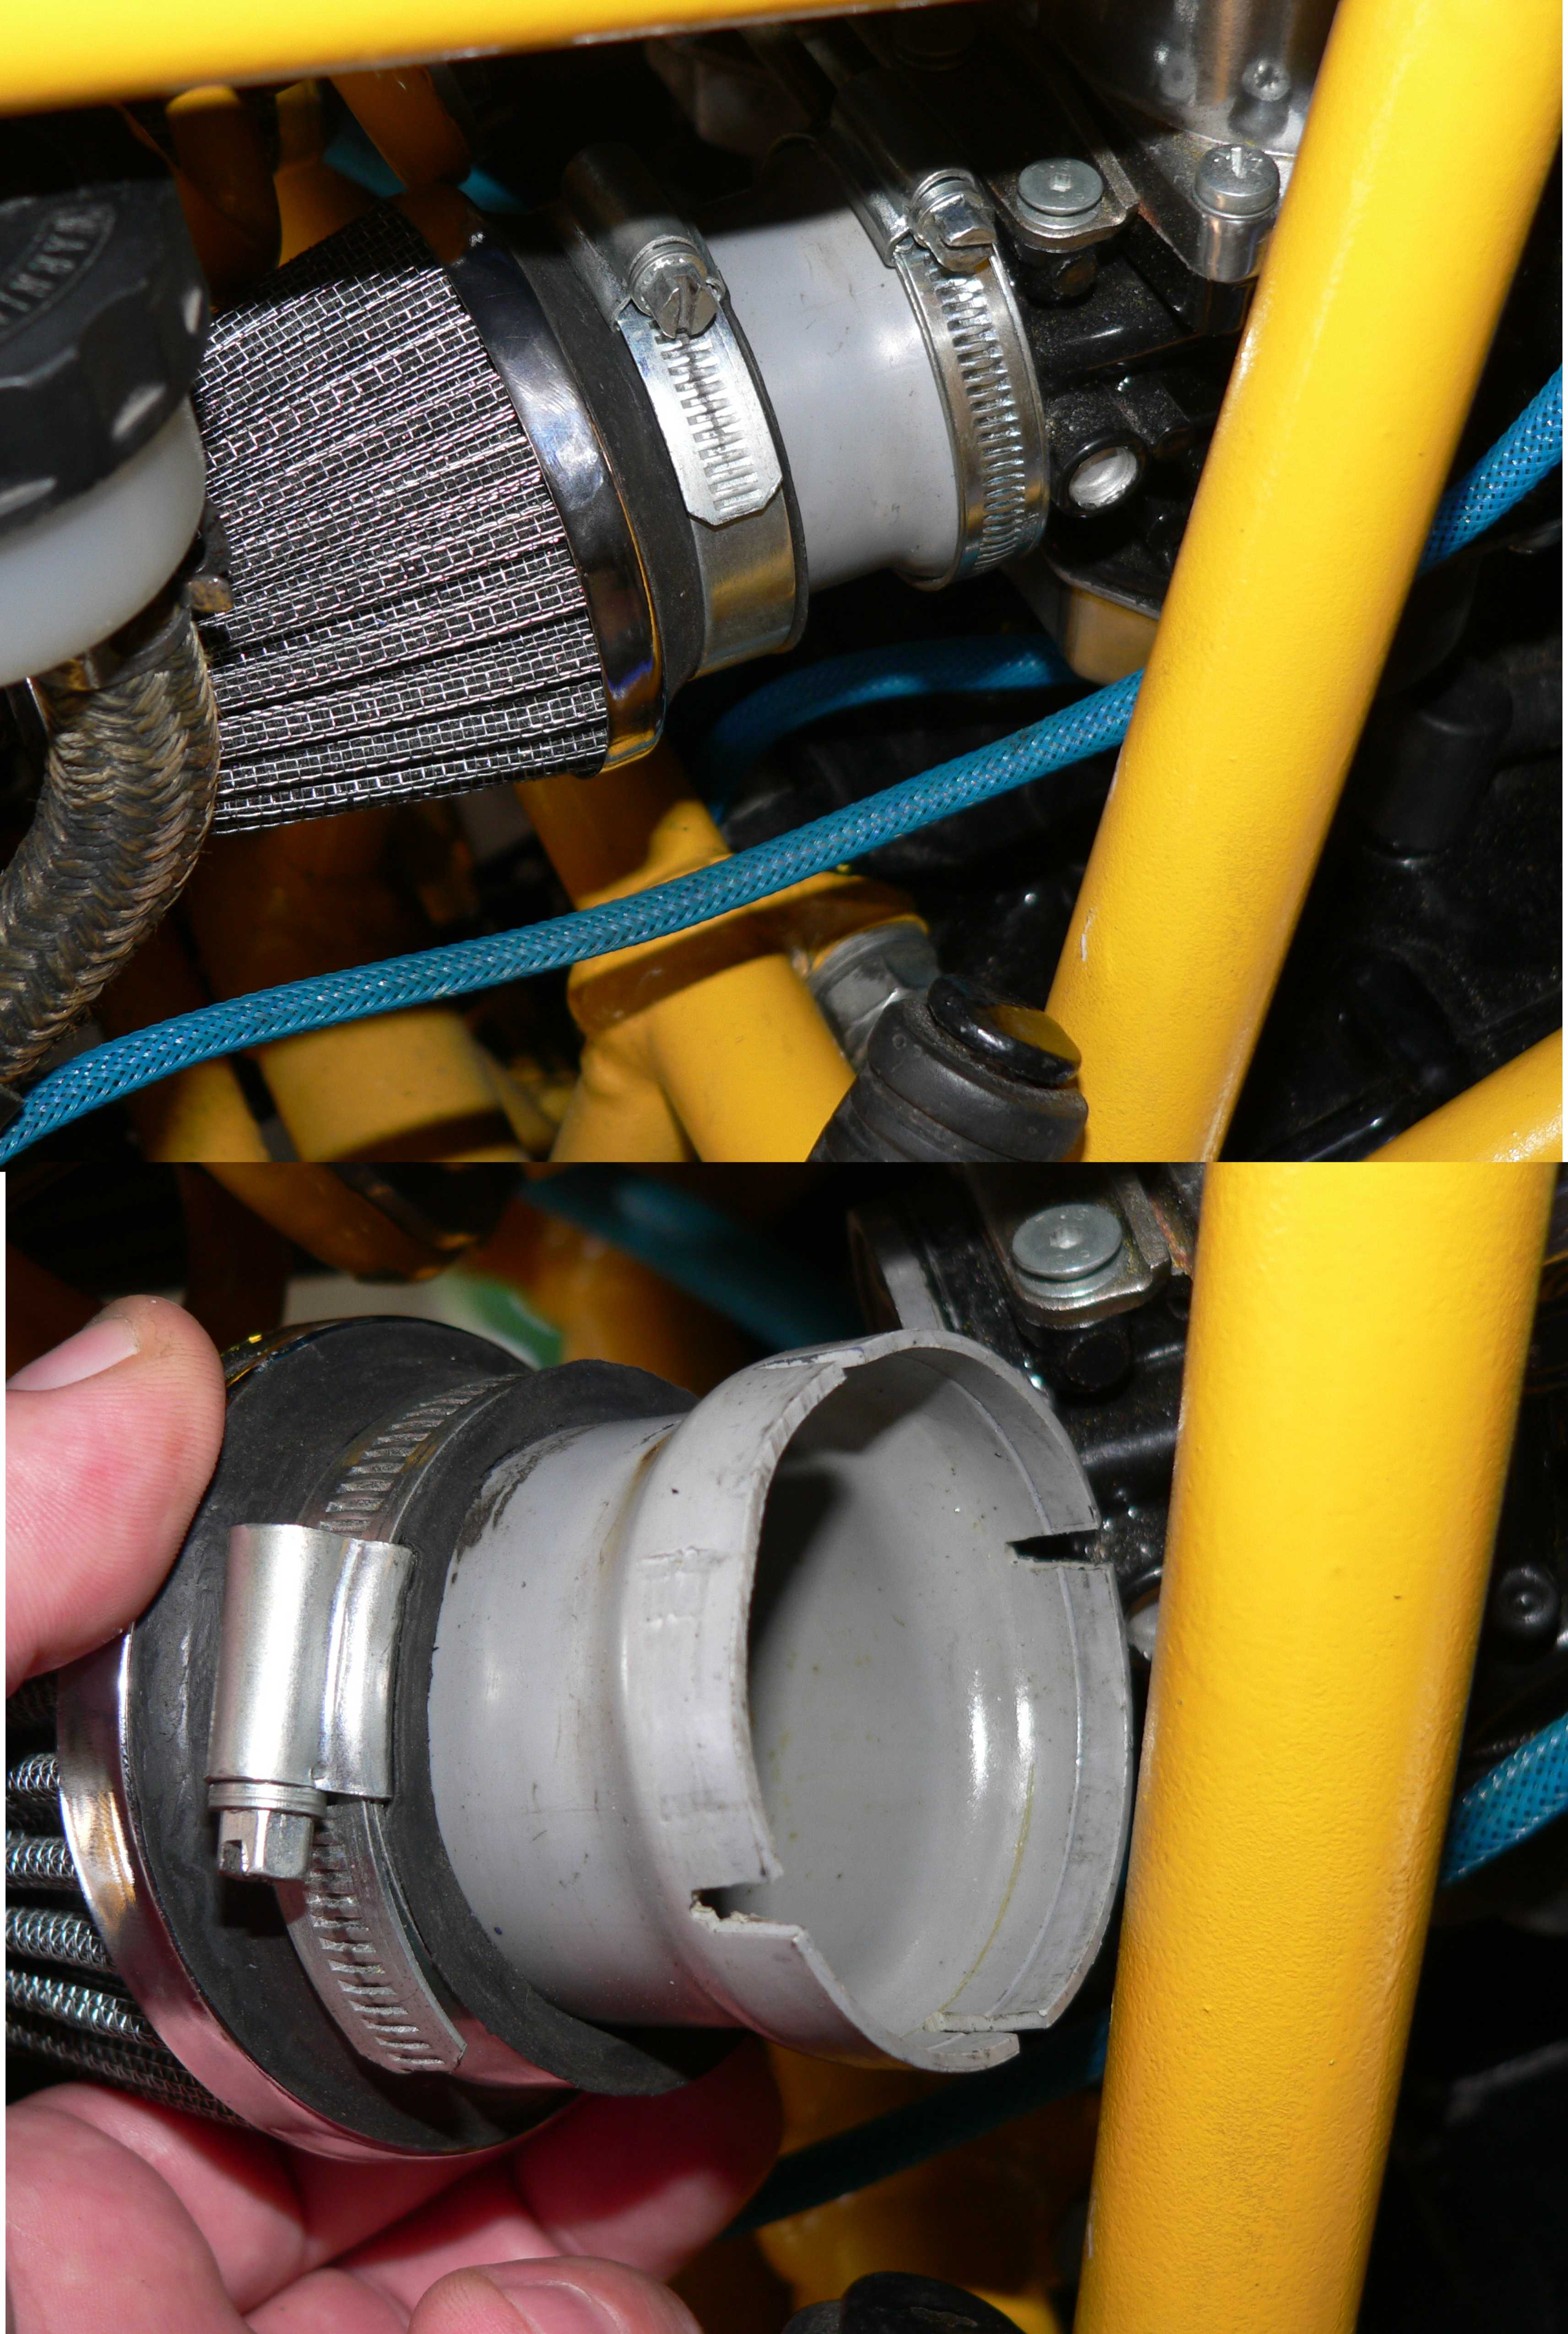 cb400 cv carbs and pods - How to make them work.-stack.jpg